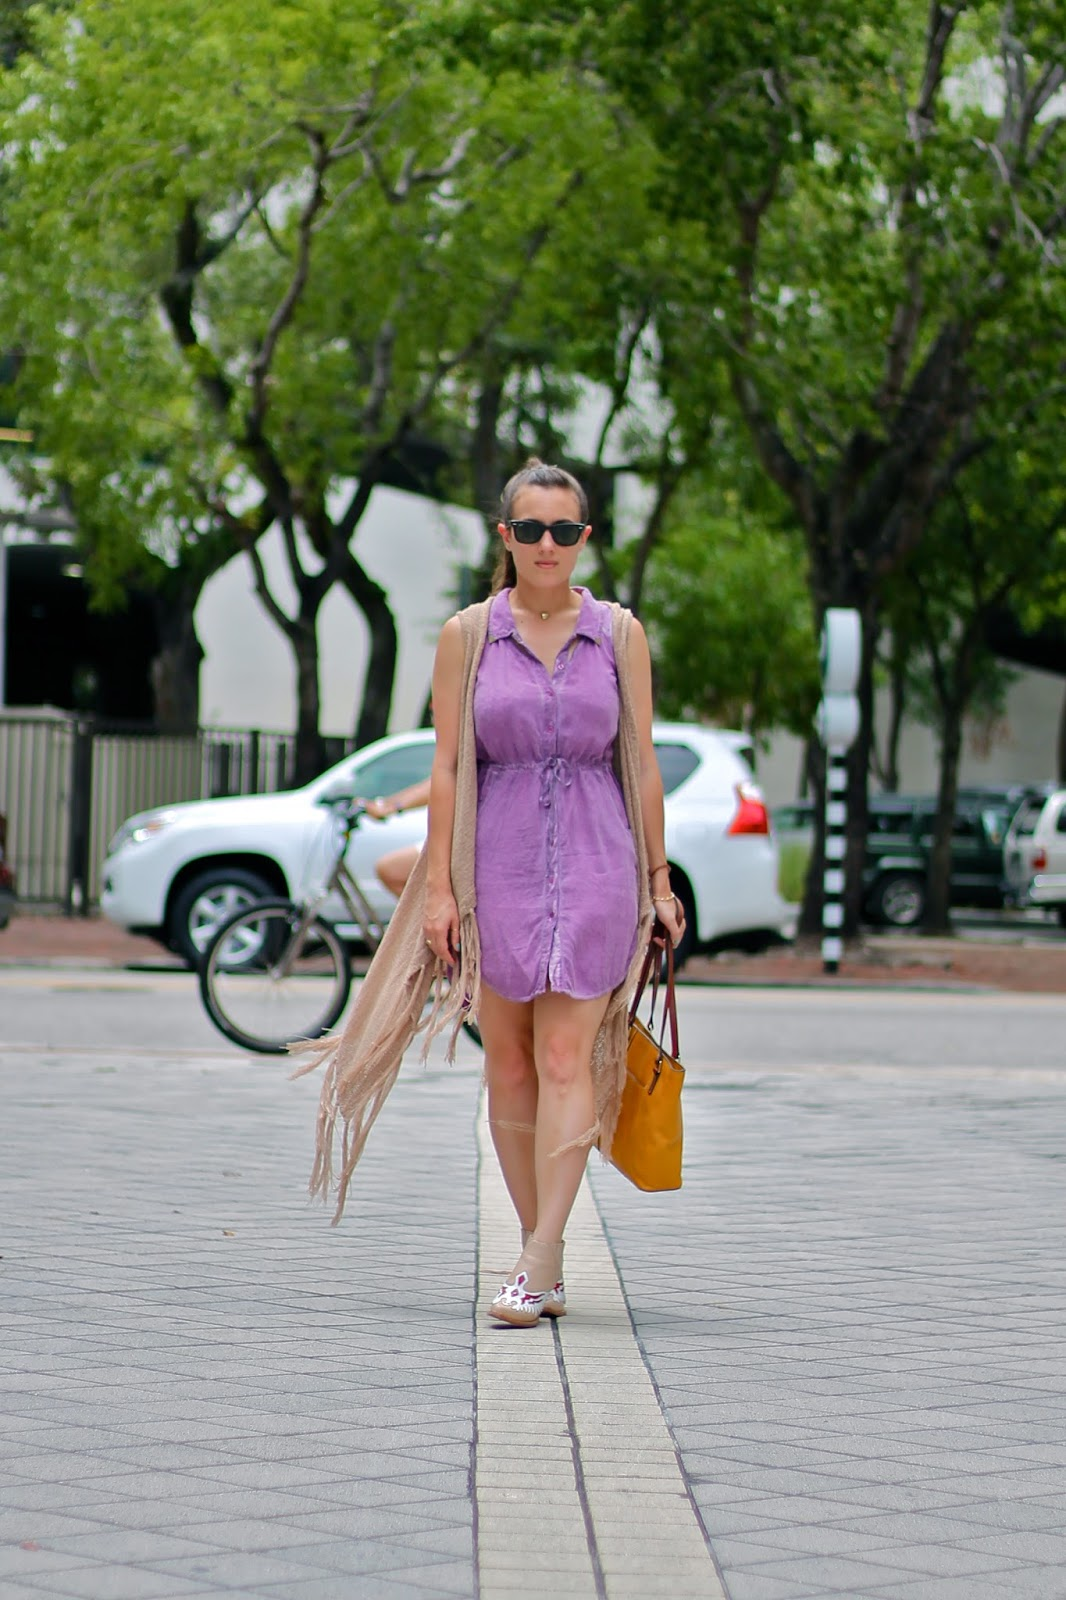 Nordstrom Rack, Macy's, Dooney & Bourke, Ray-Ban, fawkes, Harry Potter, Gryffindor, Pokemon GO, Moltres, fashion blogger, style blogger, Anthropologie, Miami fashion blogger, summer style, outfit ideas, look book, ootd, brunch looks